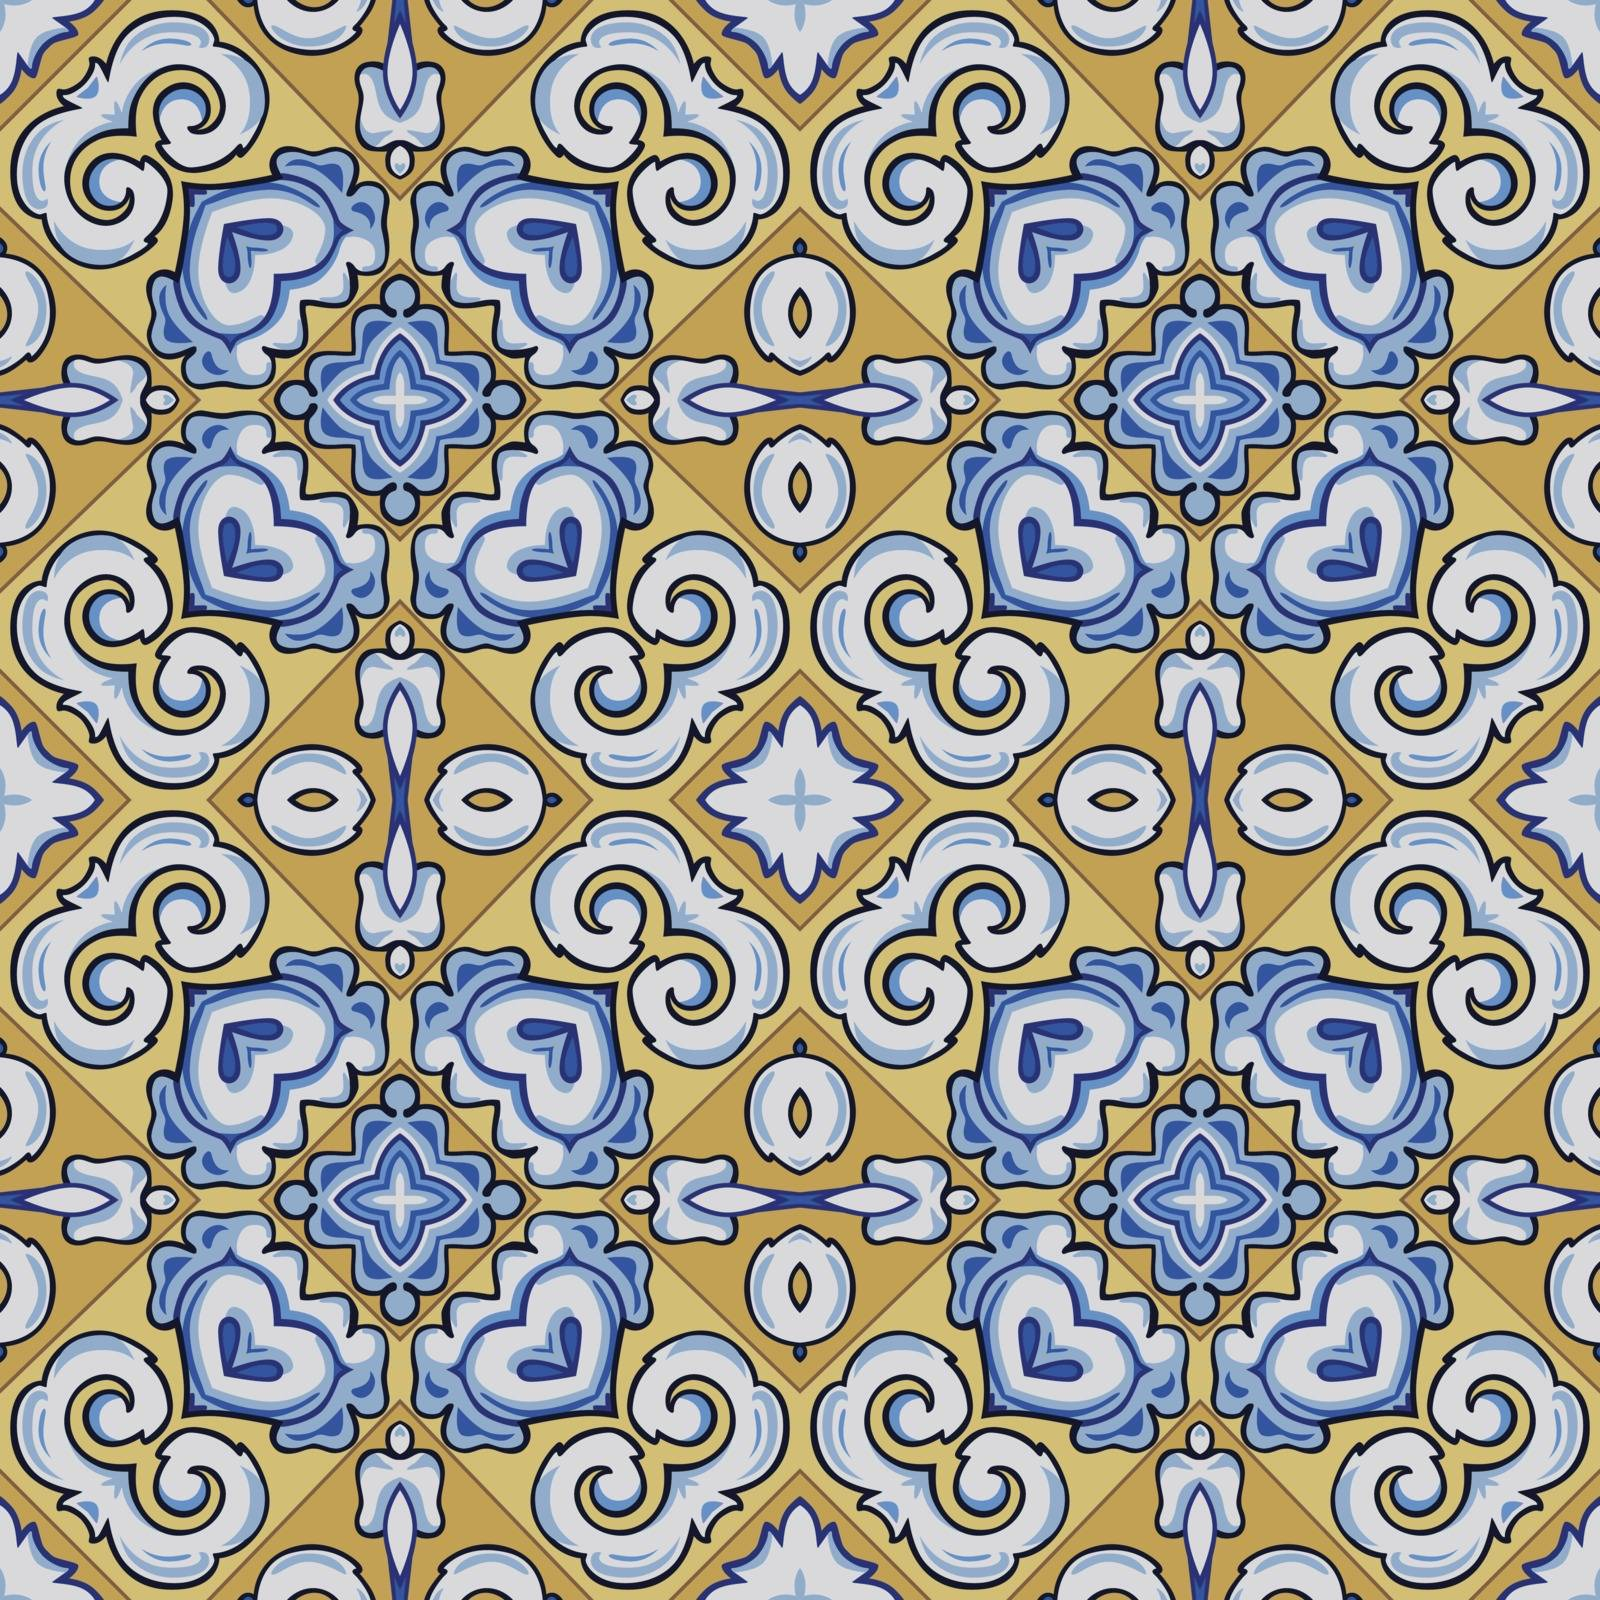 Seamless illustrated pattern made of abstract elements in white, yellow, brown, black and blue